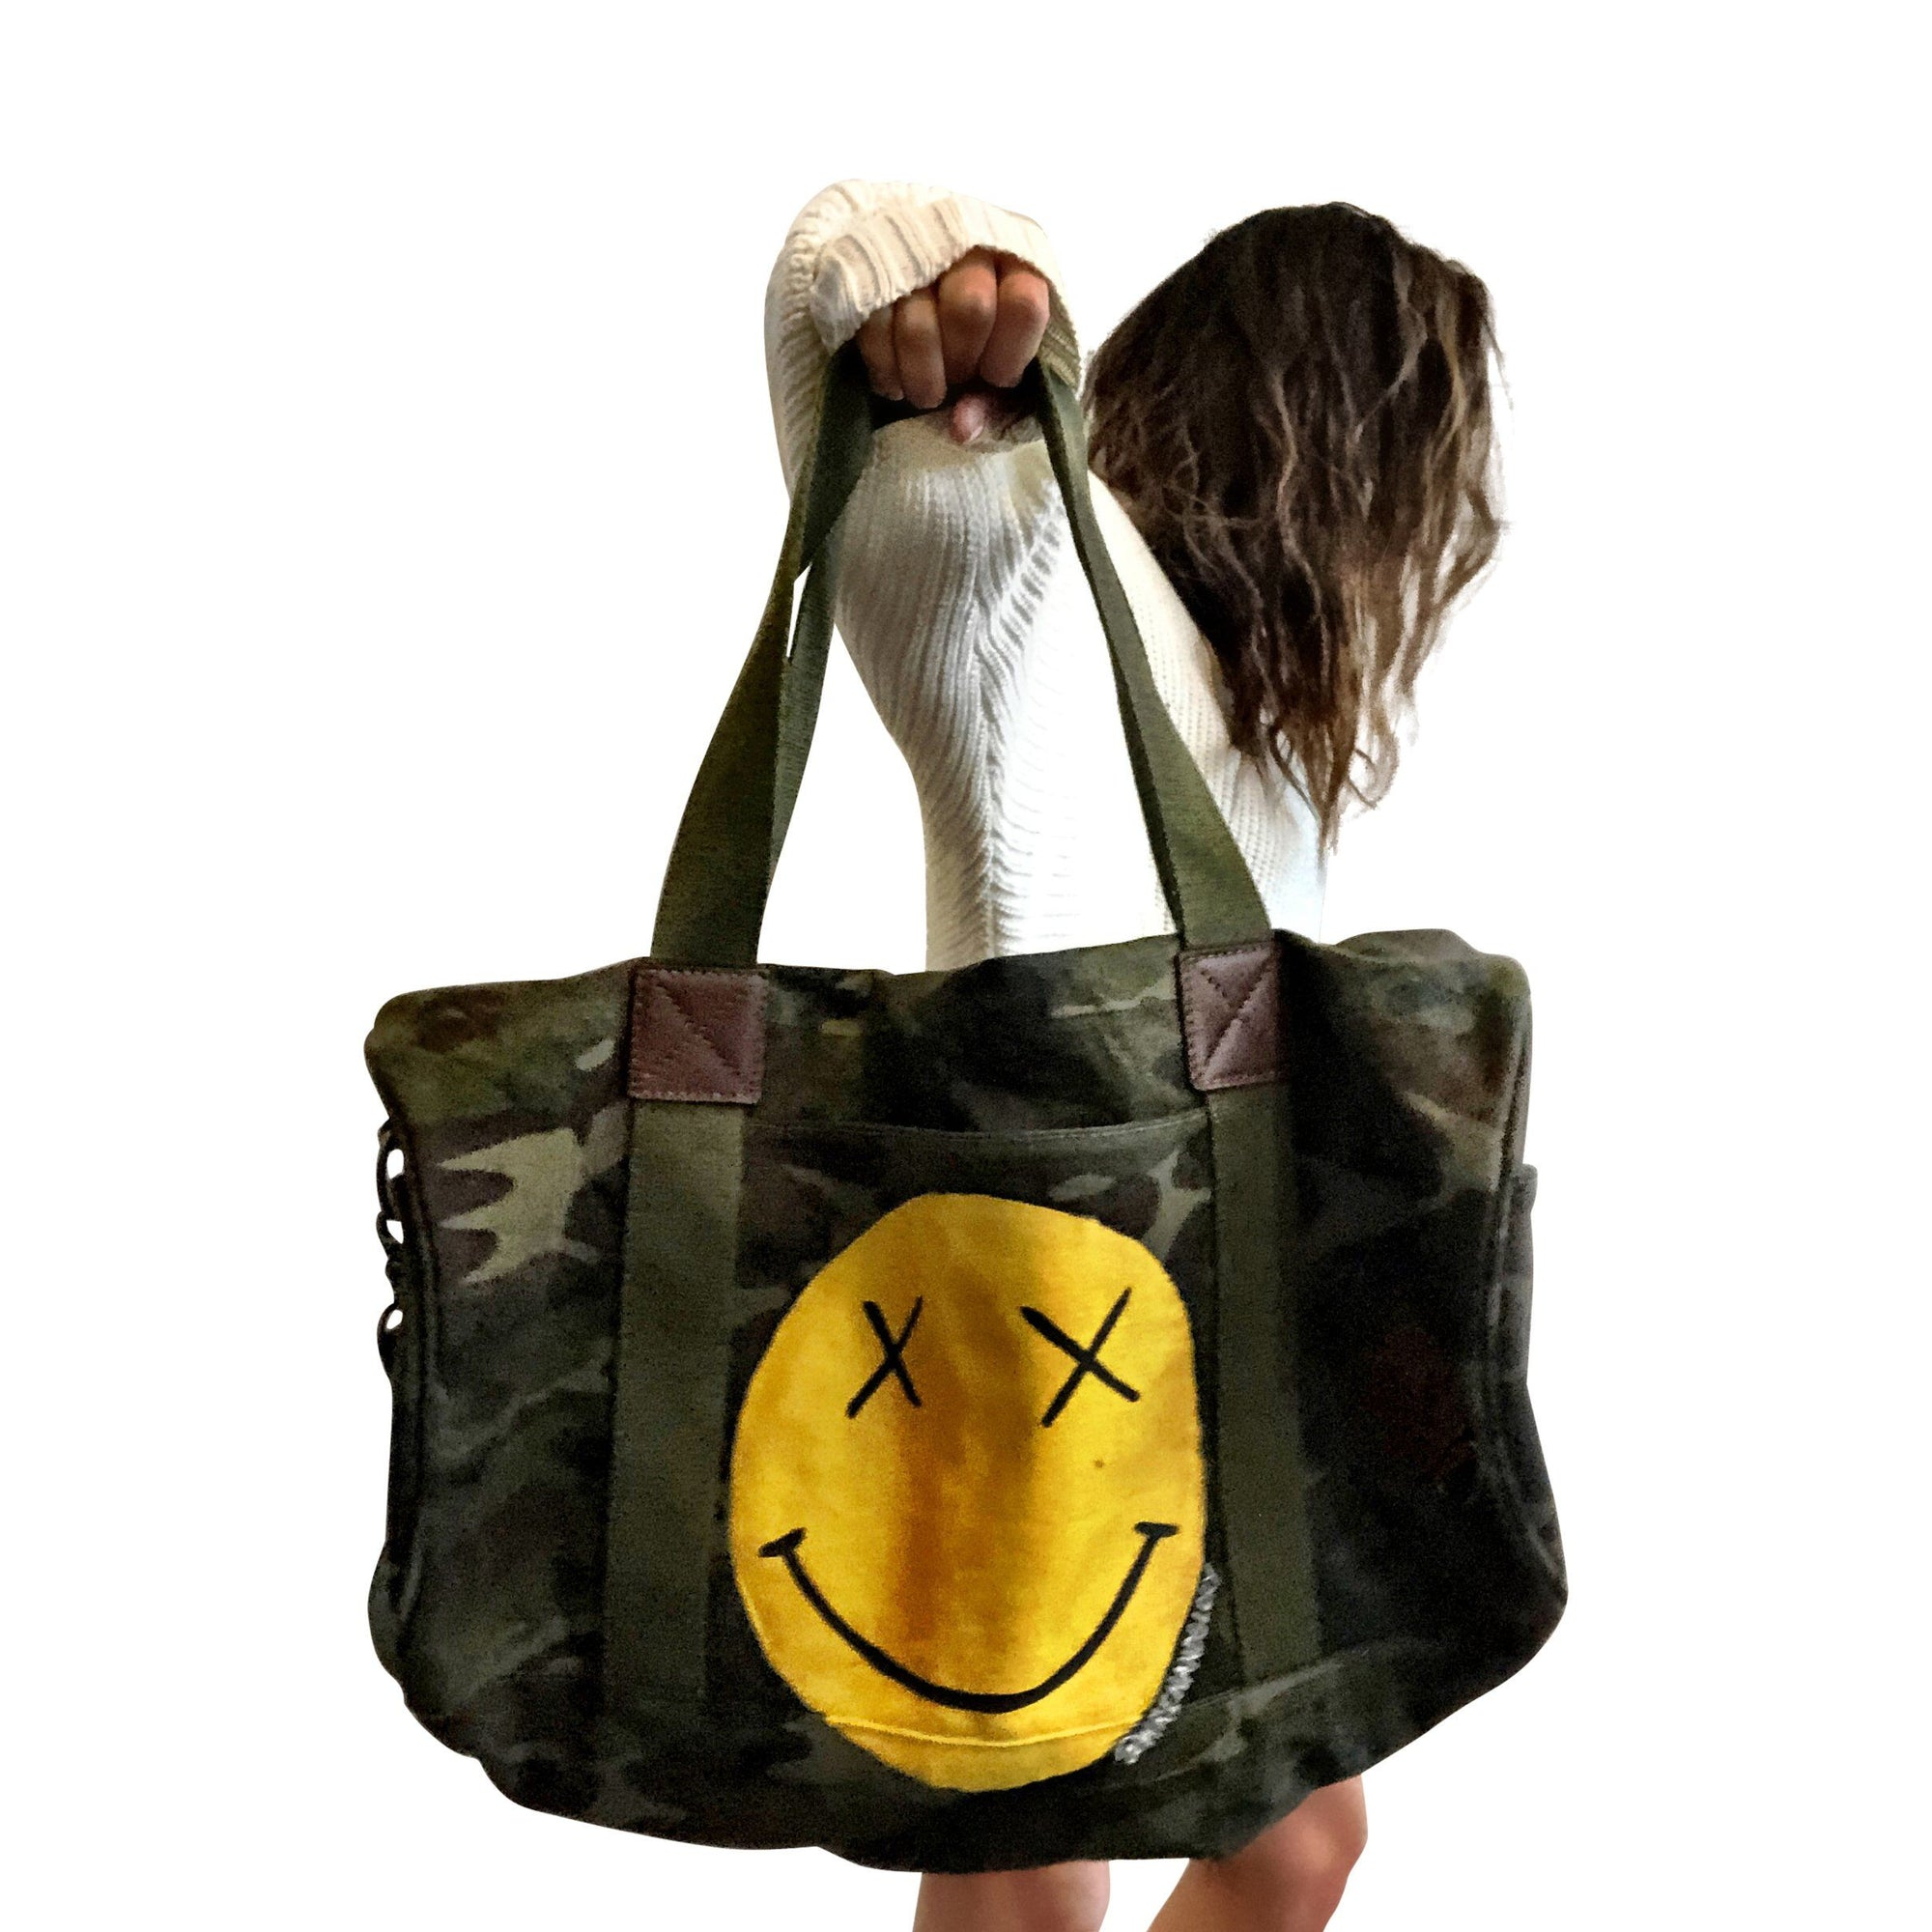 'SMILEY' DUFFLE BAG